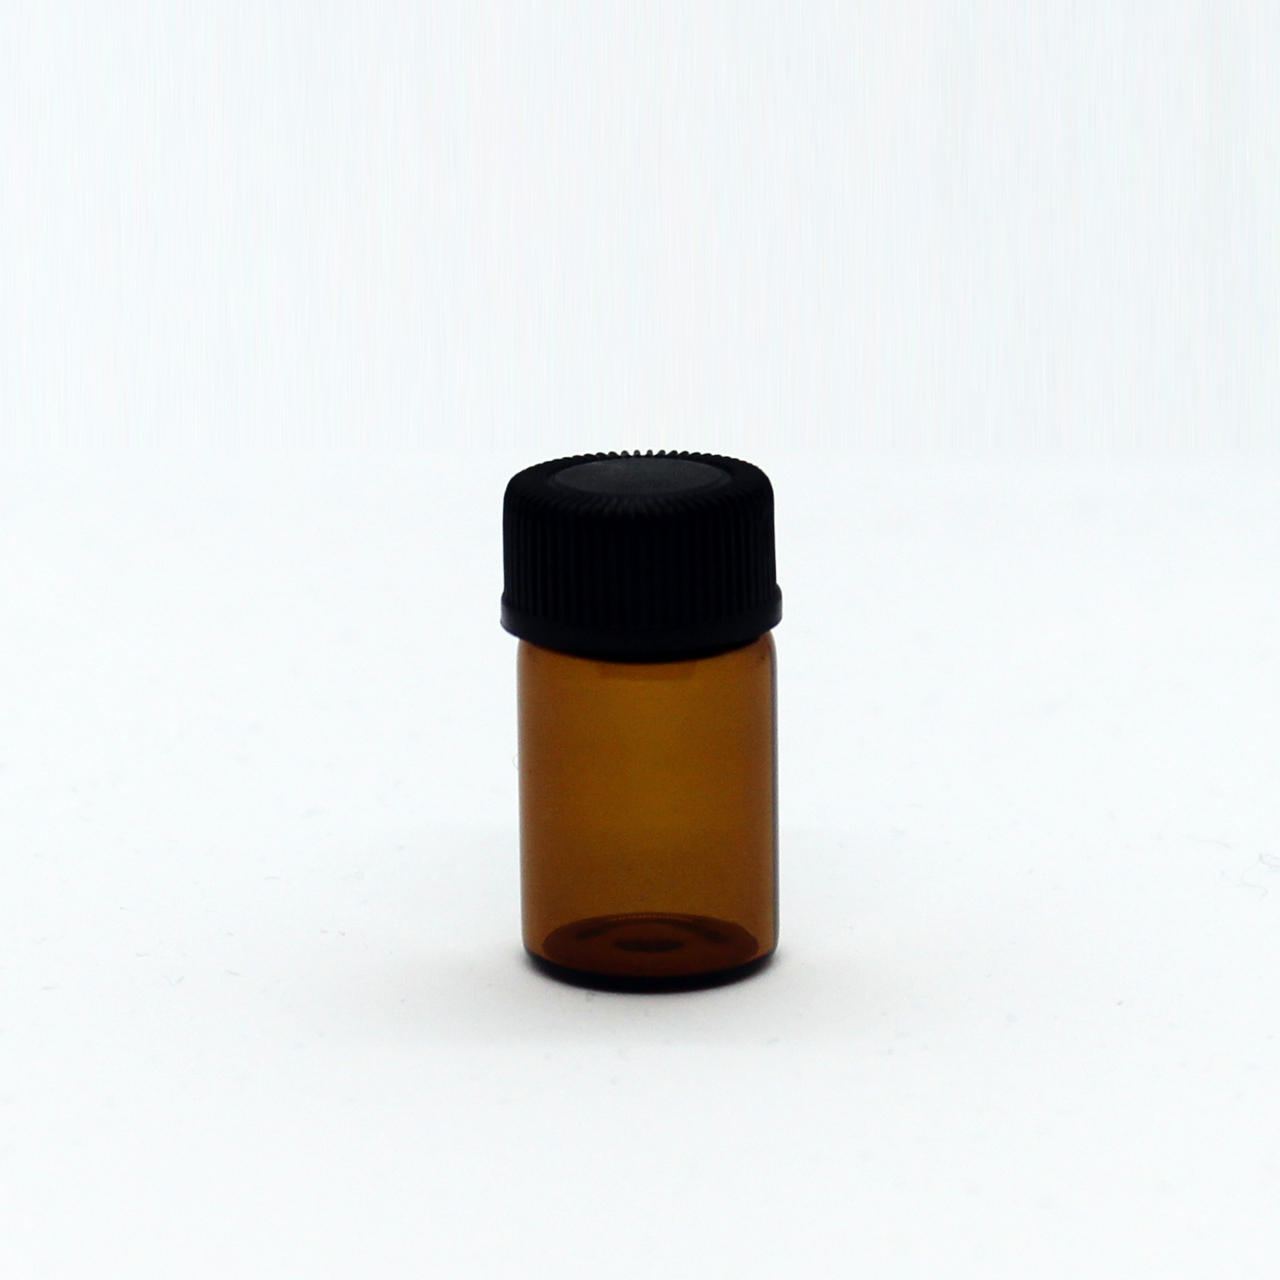 Amber Glass Bottles 2mL 20 pieces